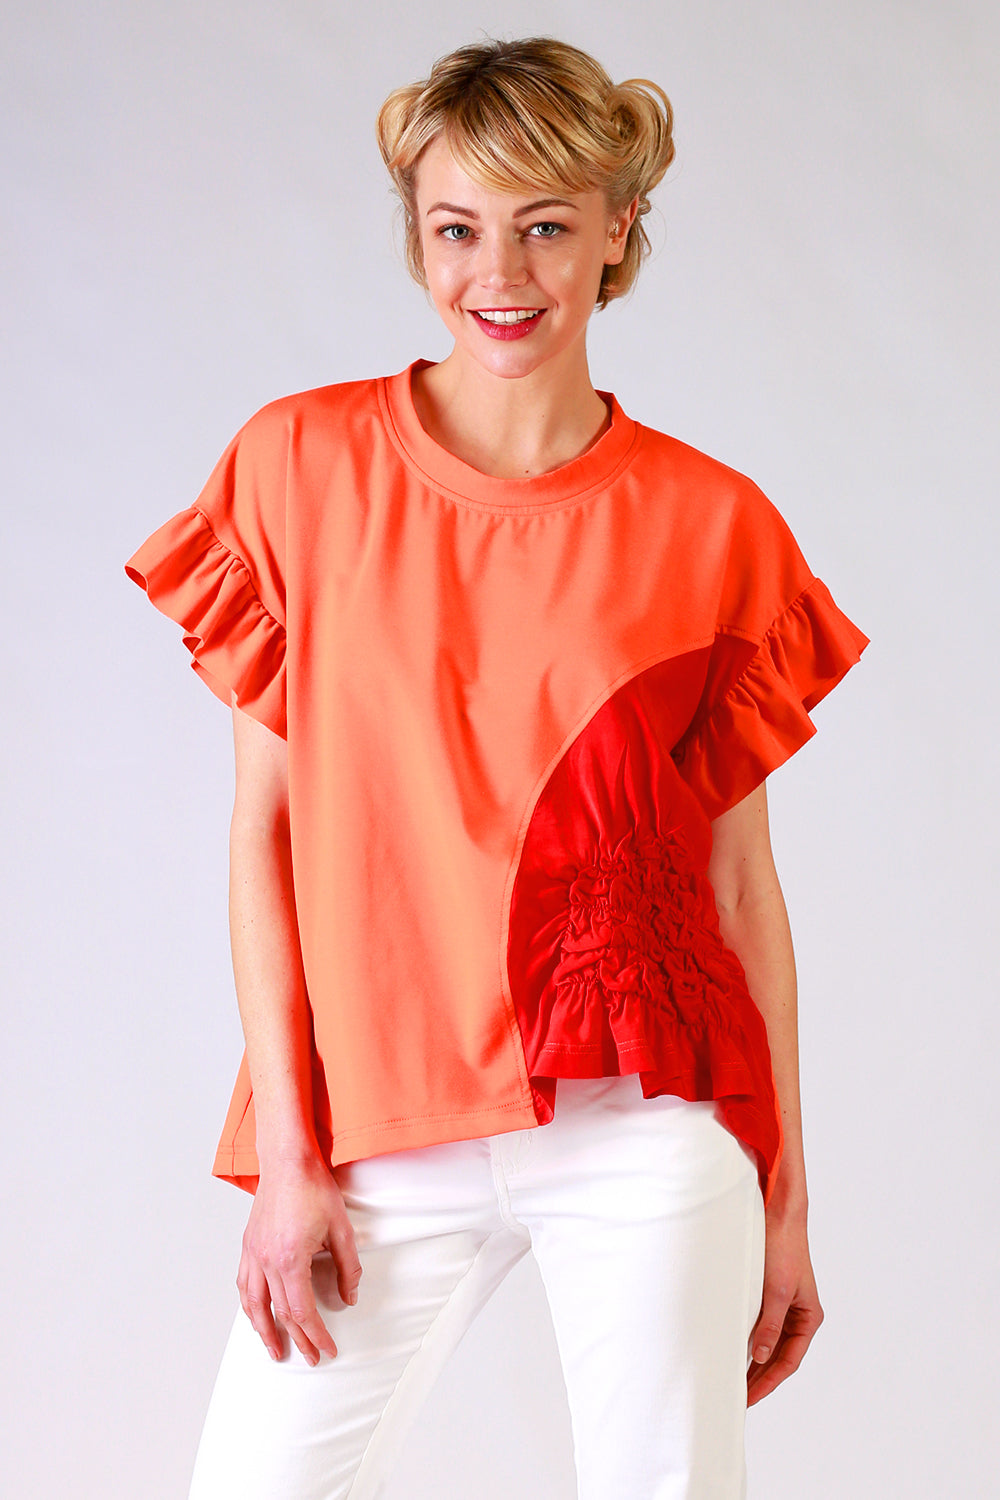 Scrunchie T Shirt | Scrunchie Tee | Return to Sender | Orange Tee | Summer 19 | Annah Stretton Fashion NZ